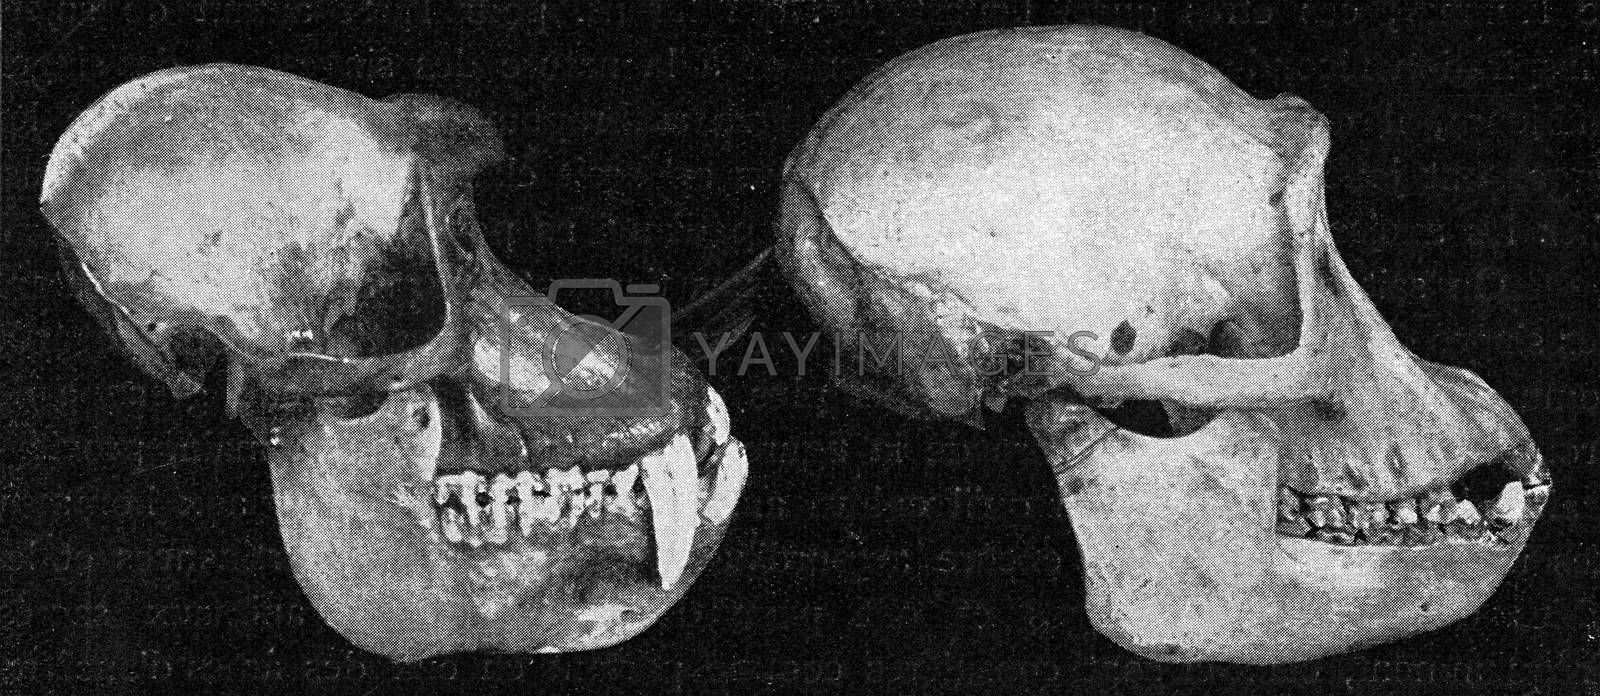 Skulls of papion and a chimpanzee, vintage engraved illustration. From the Universe and Humanity, 1910.